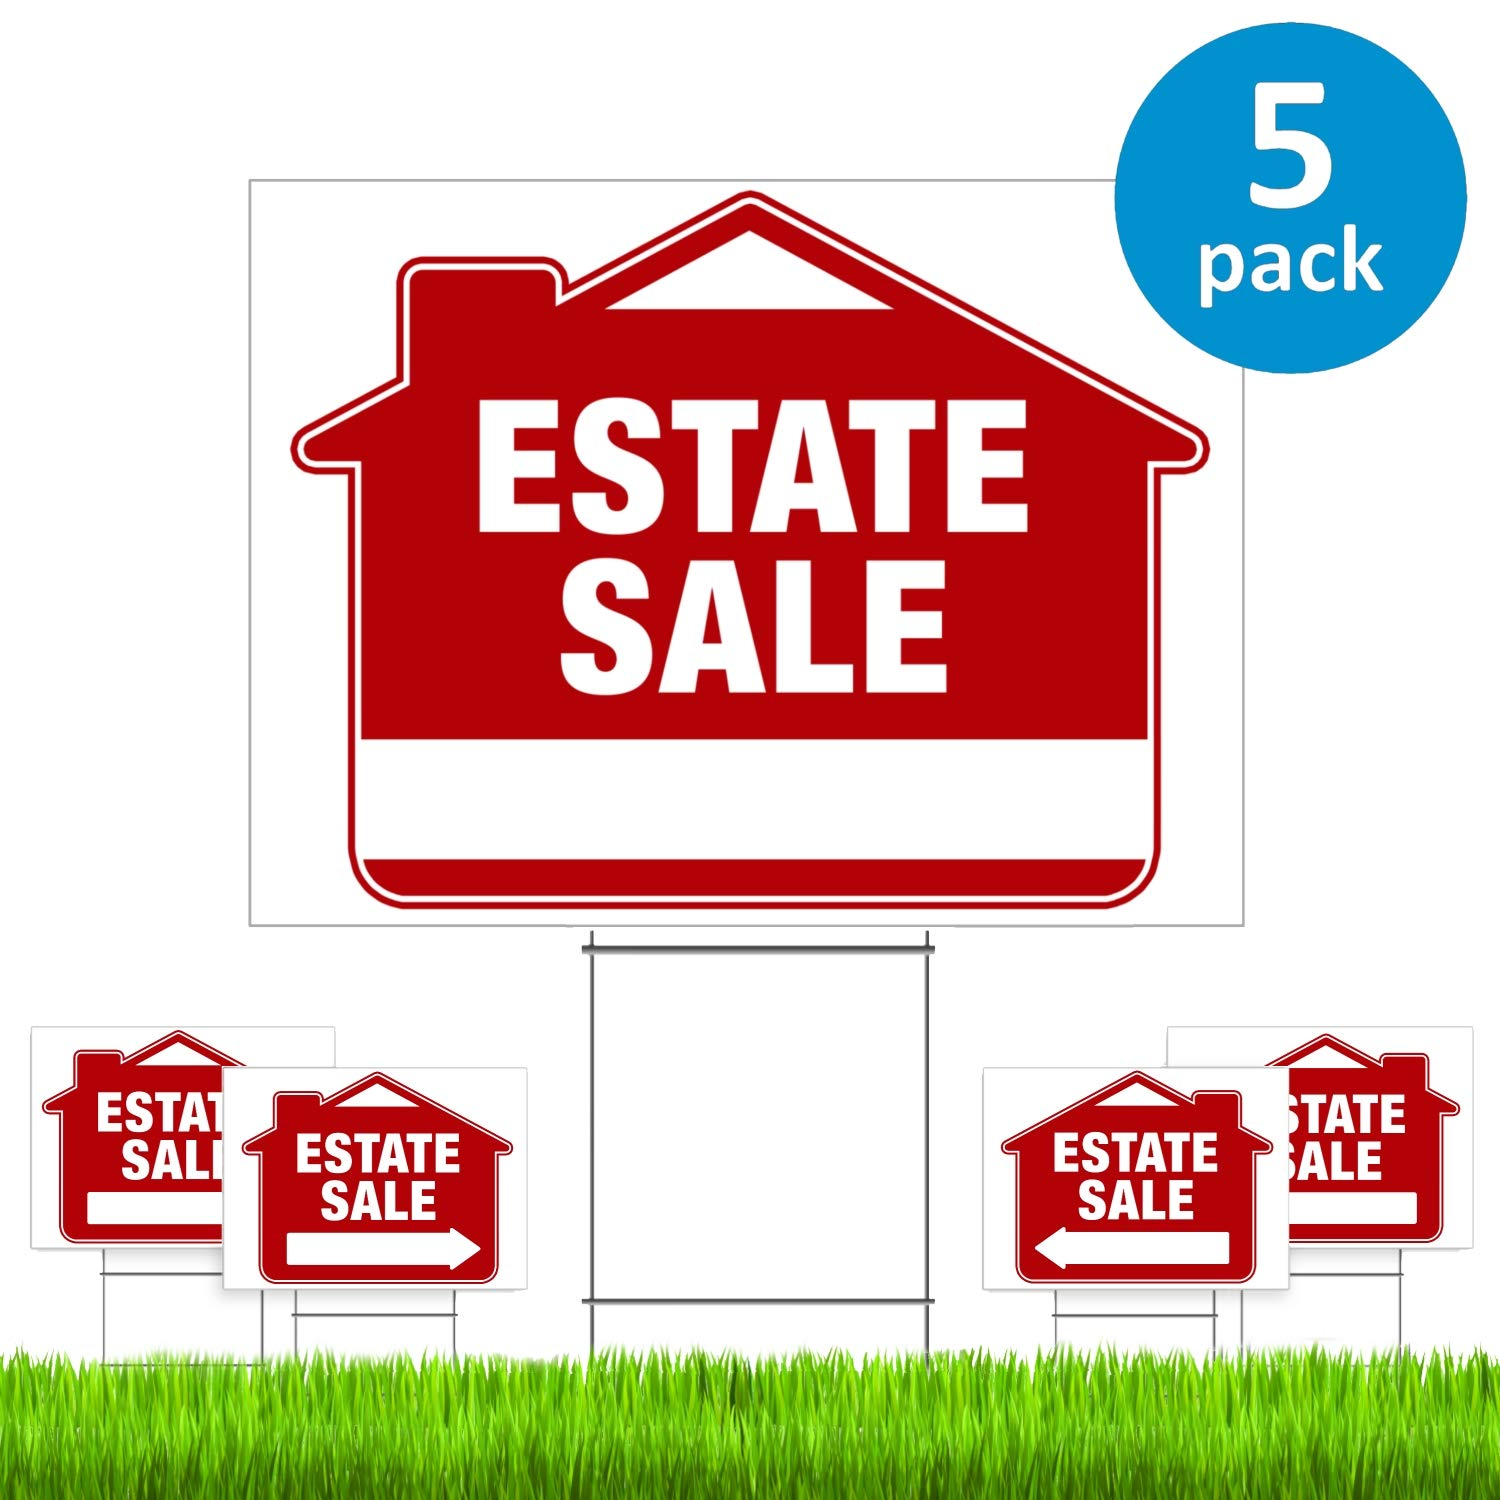 Estate Sale Signs with Stakes (5 Pack) - Premium Double-Sided Estate Sale Signs with Directional Arrows & Heavy Duty Yard Stakes (Large 18'' x 24'' Size) - New!